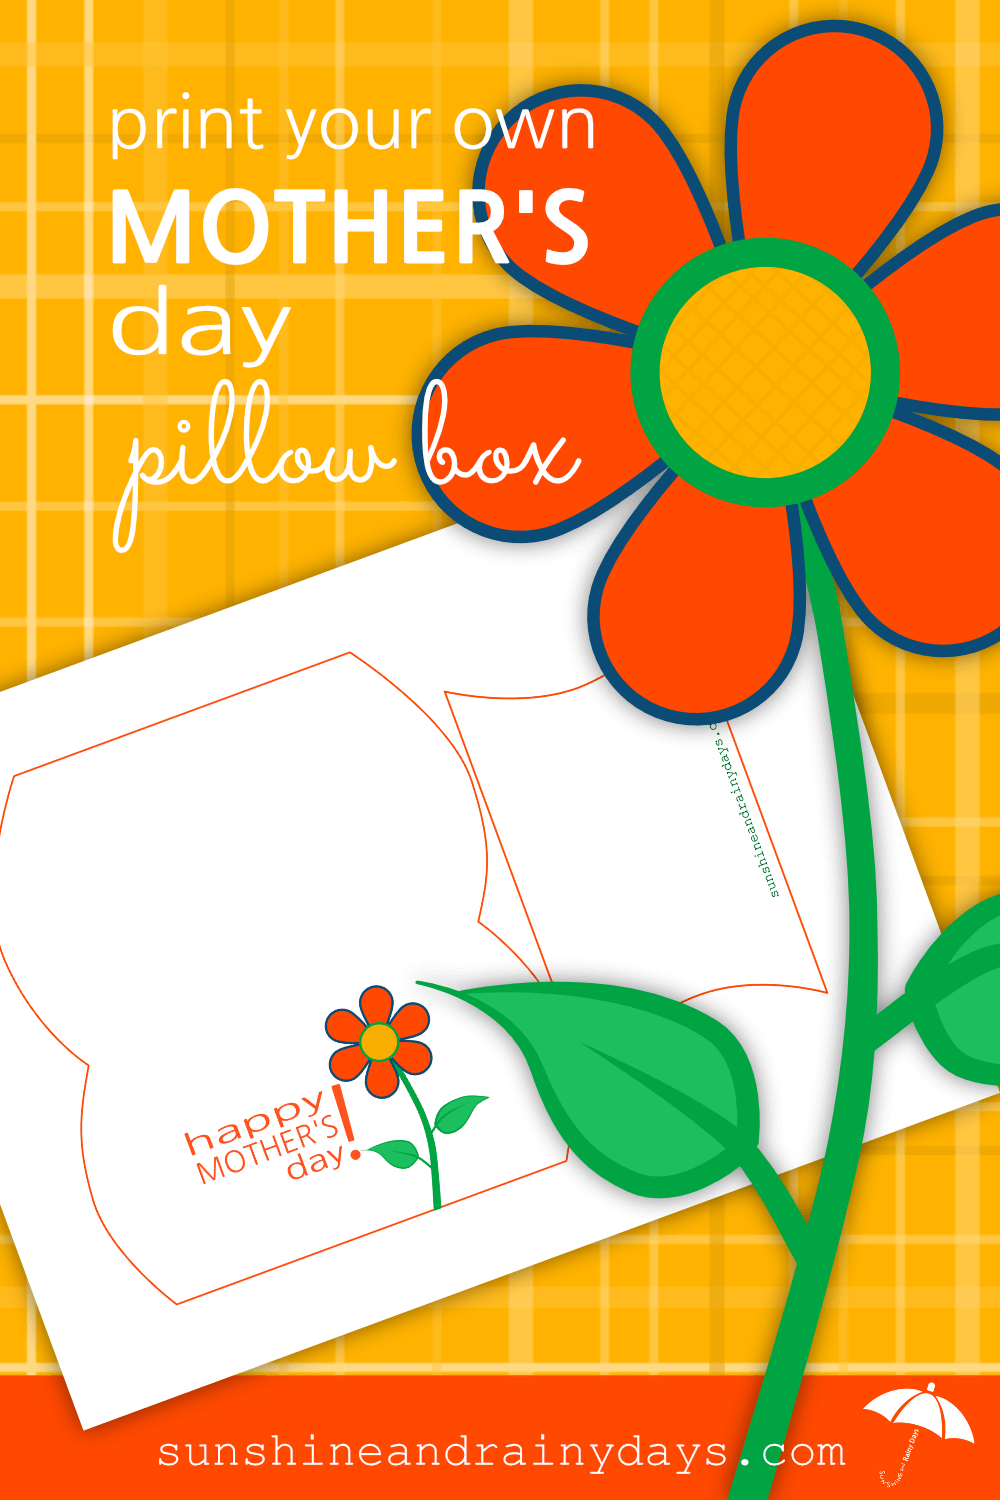 Are you giving Mom a gift card this year? This Mother's Day Pillow Box is the PERFECT size for that gift card!